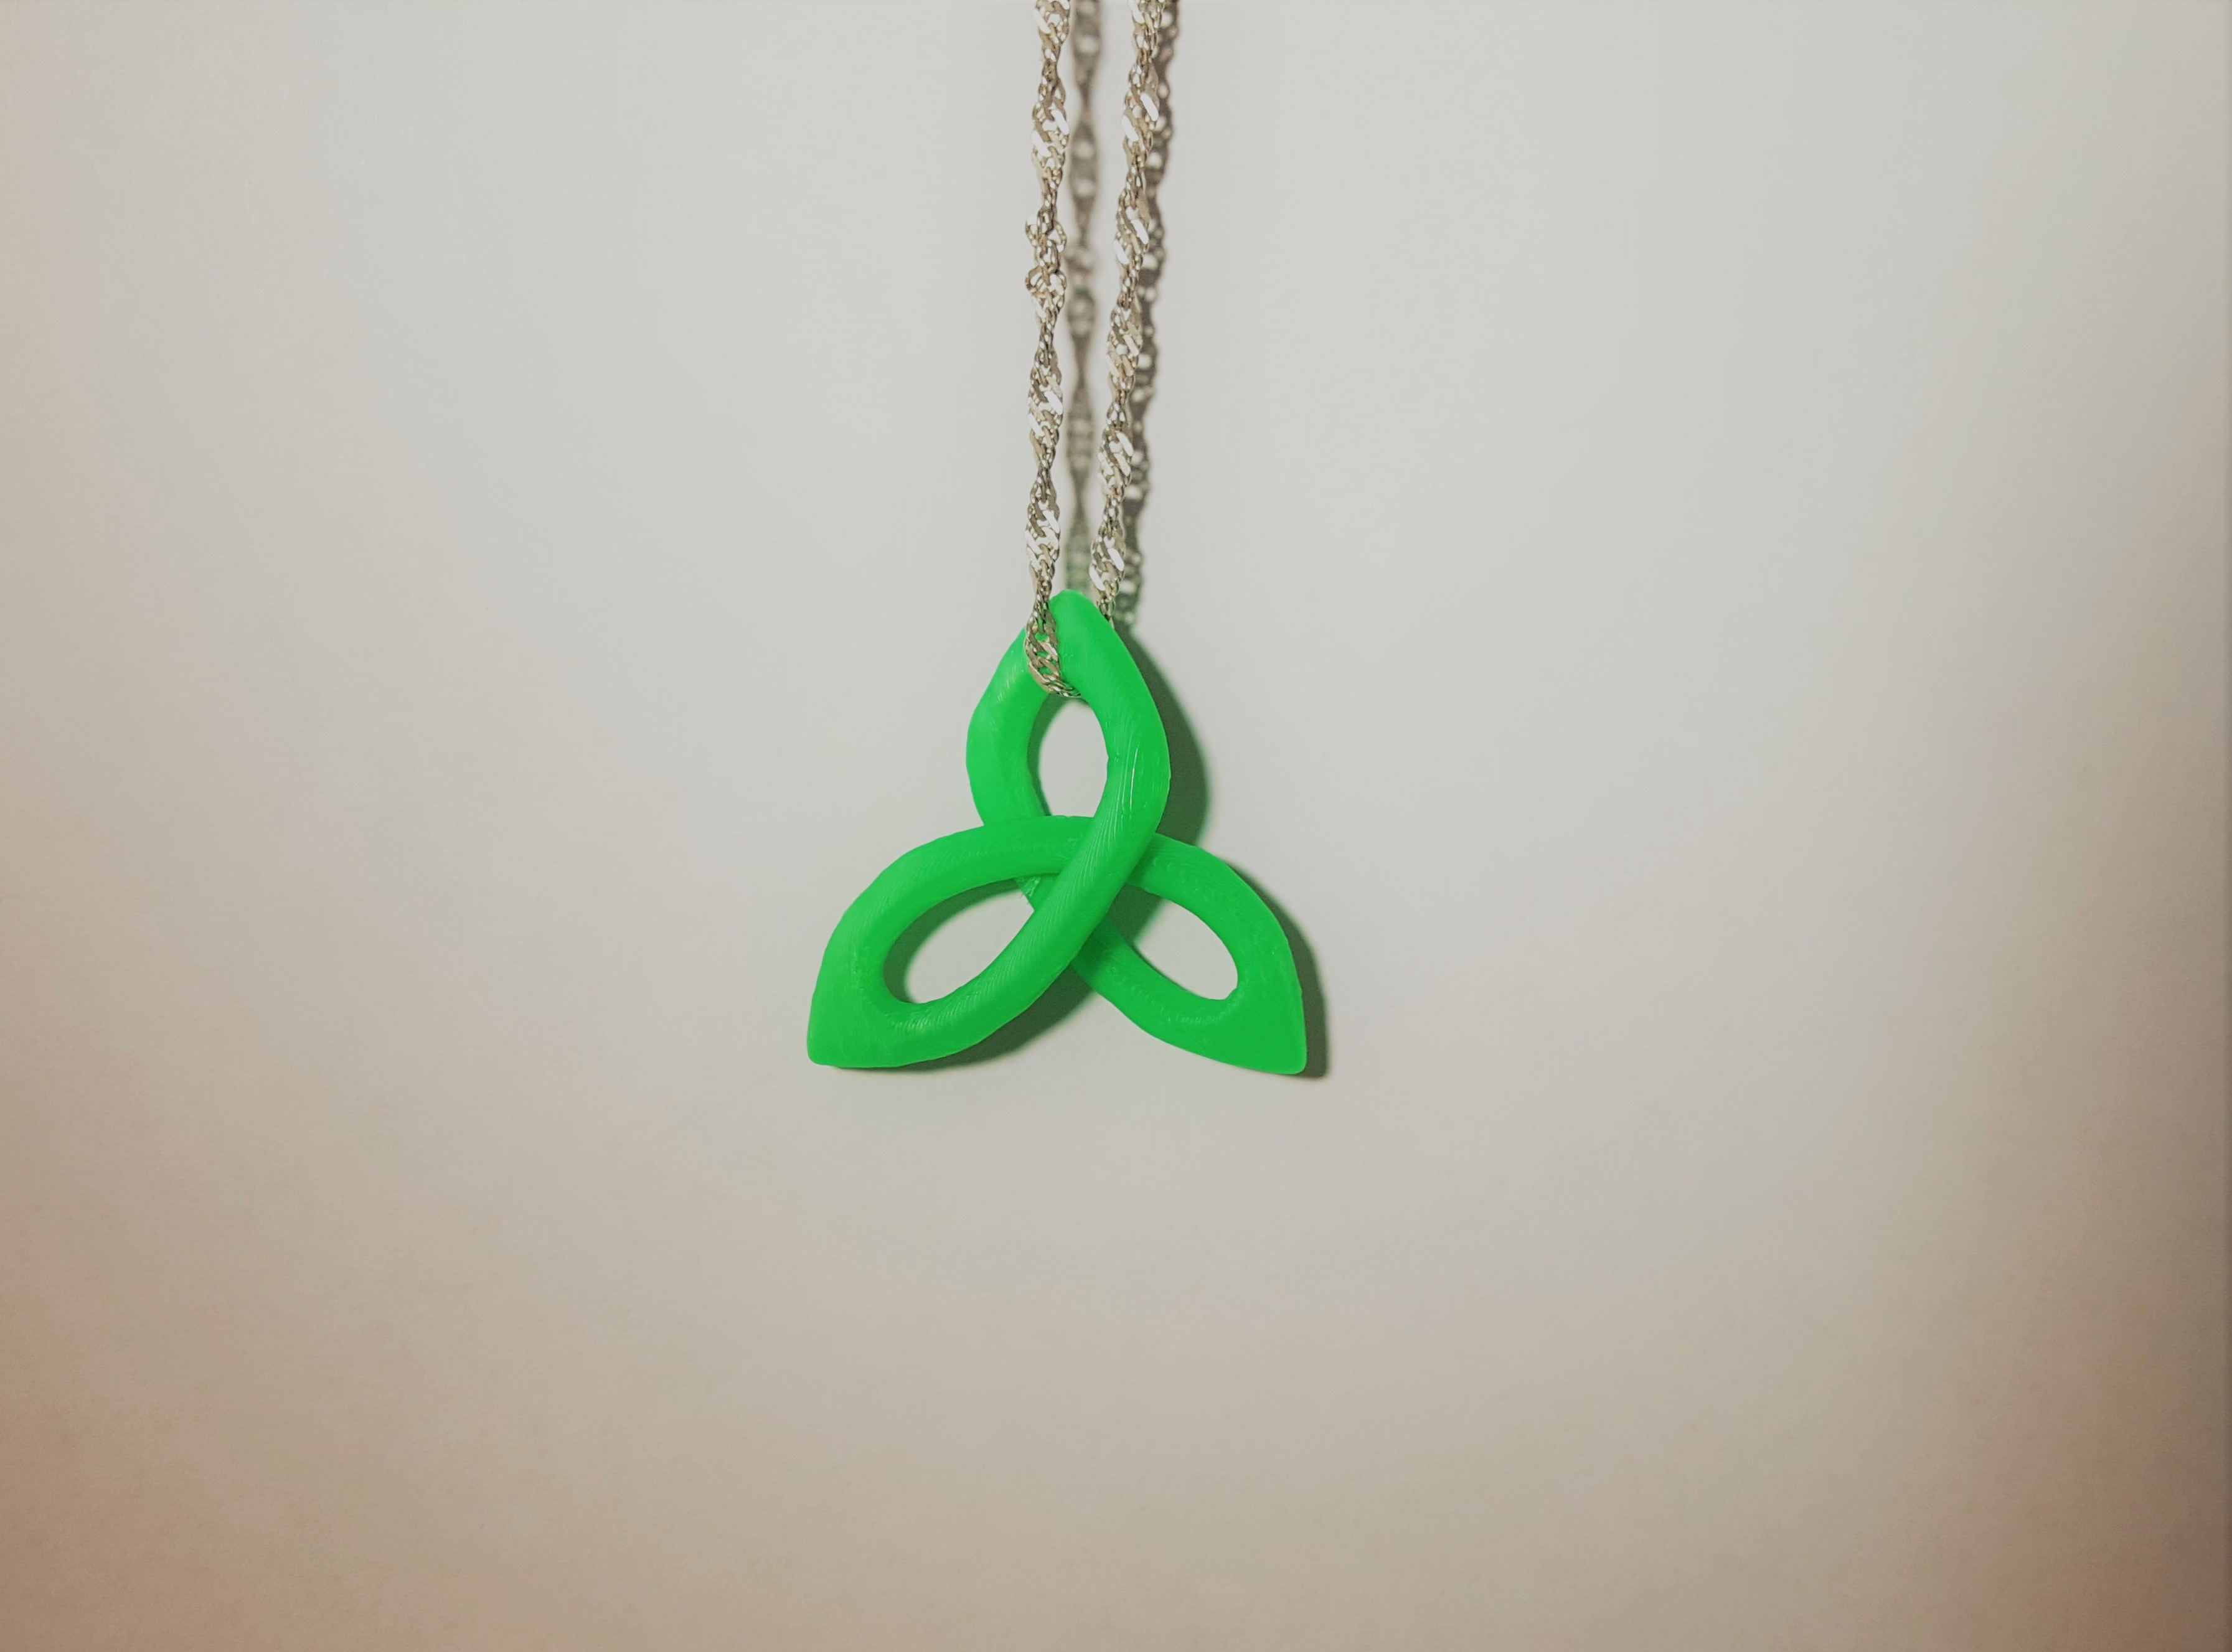 Triquetra Pendant - 3D design by Dan O'Connell Sep 13, 2017